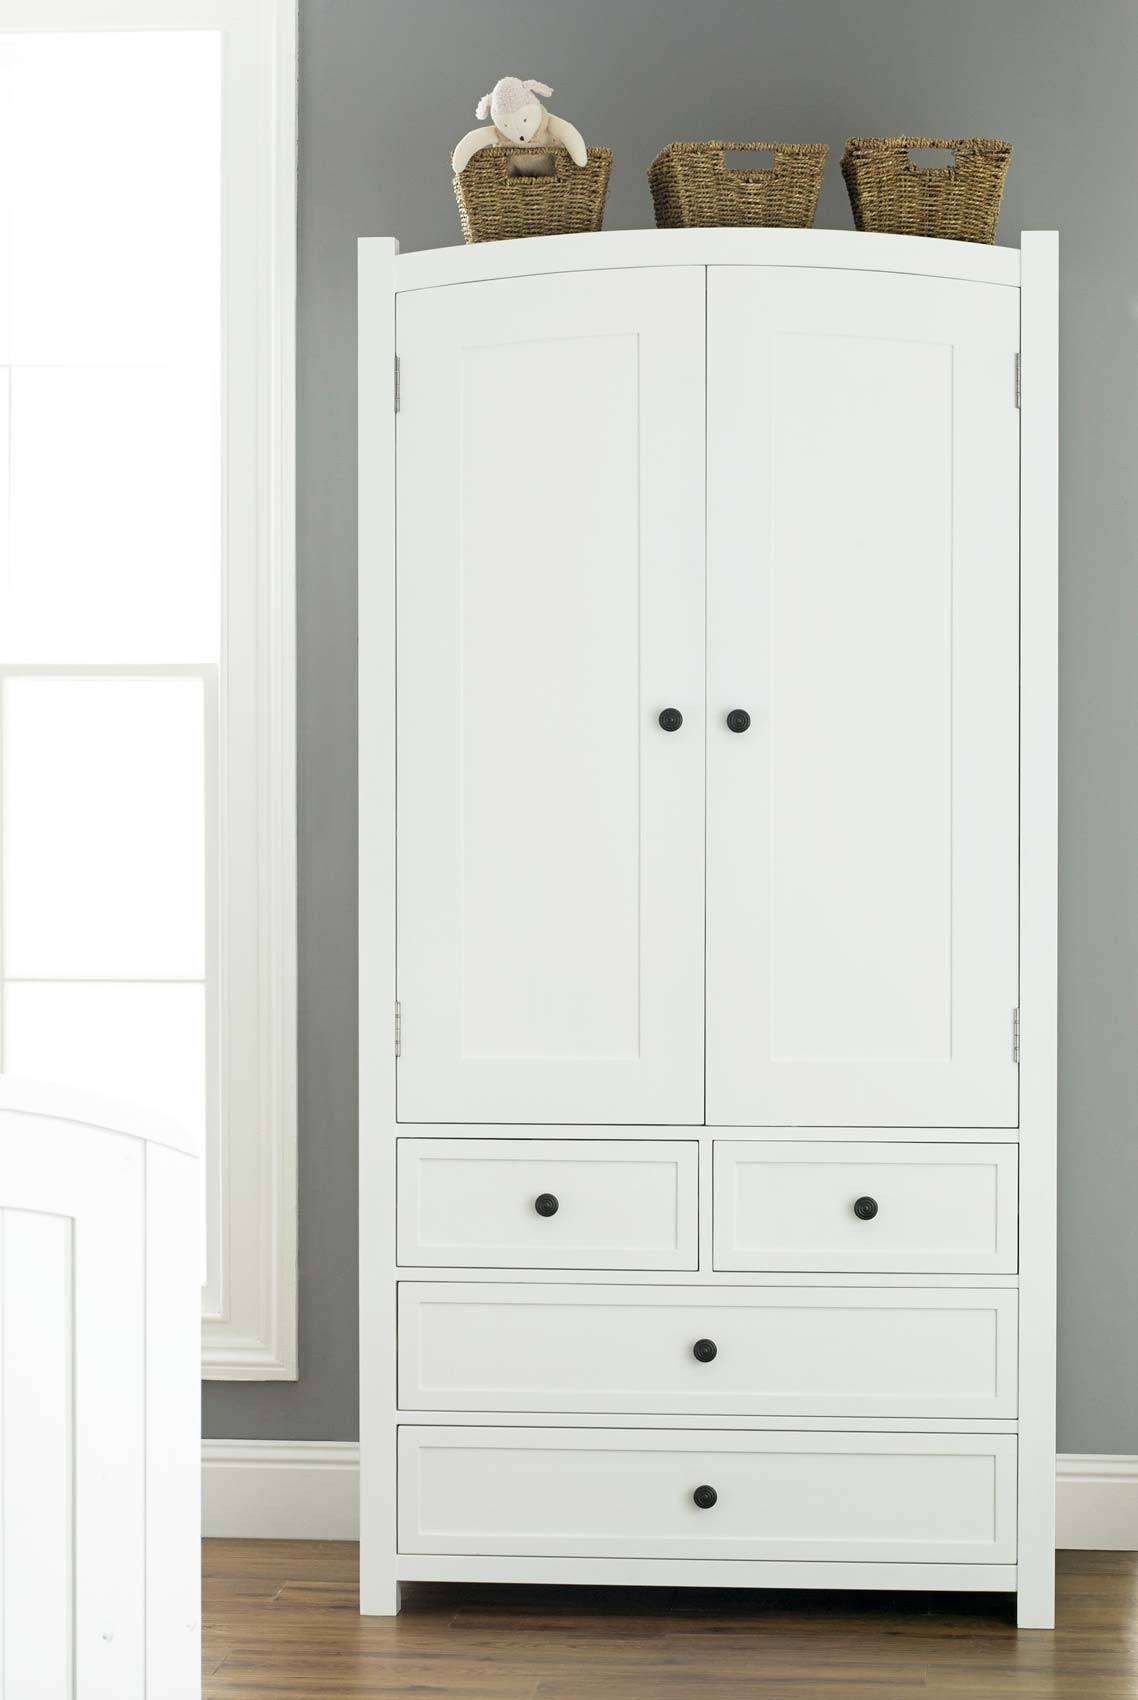 Wardrobe : 31 Marvelous White Wooden Wardrobe Photo Design White regarding Single White Wardrobes With Drawers (Image 10 of 15)